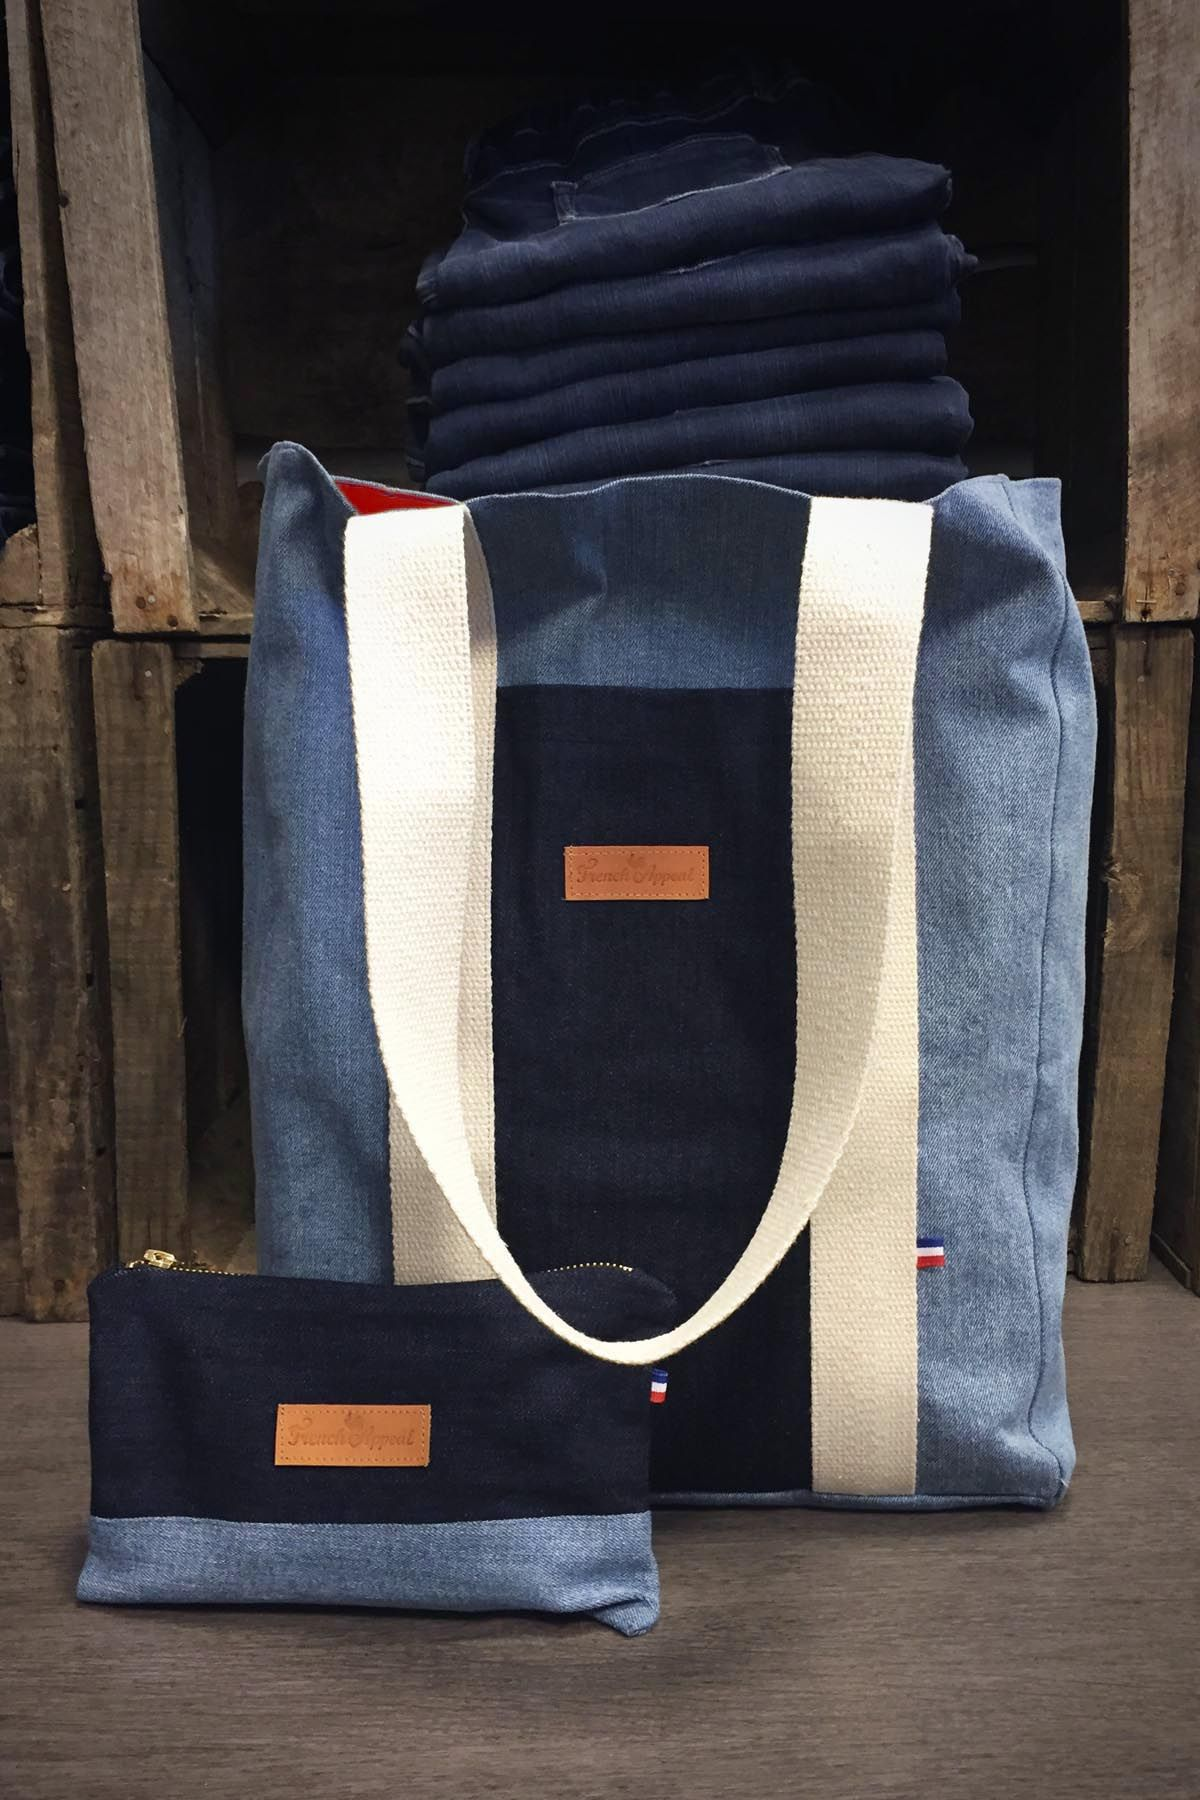 Les accessoires French Appeal, fabriqués à Paris. http://www.frenchappeal.com/index.php?id_category=33&controller=category